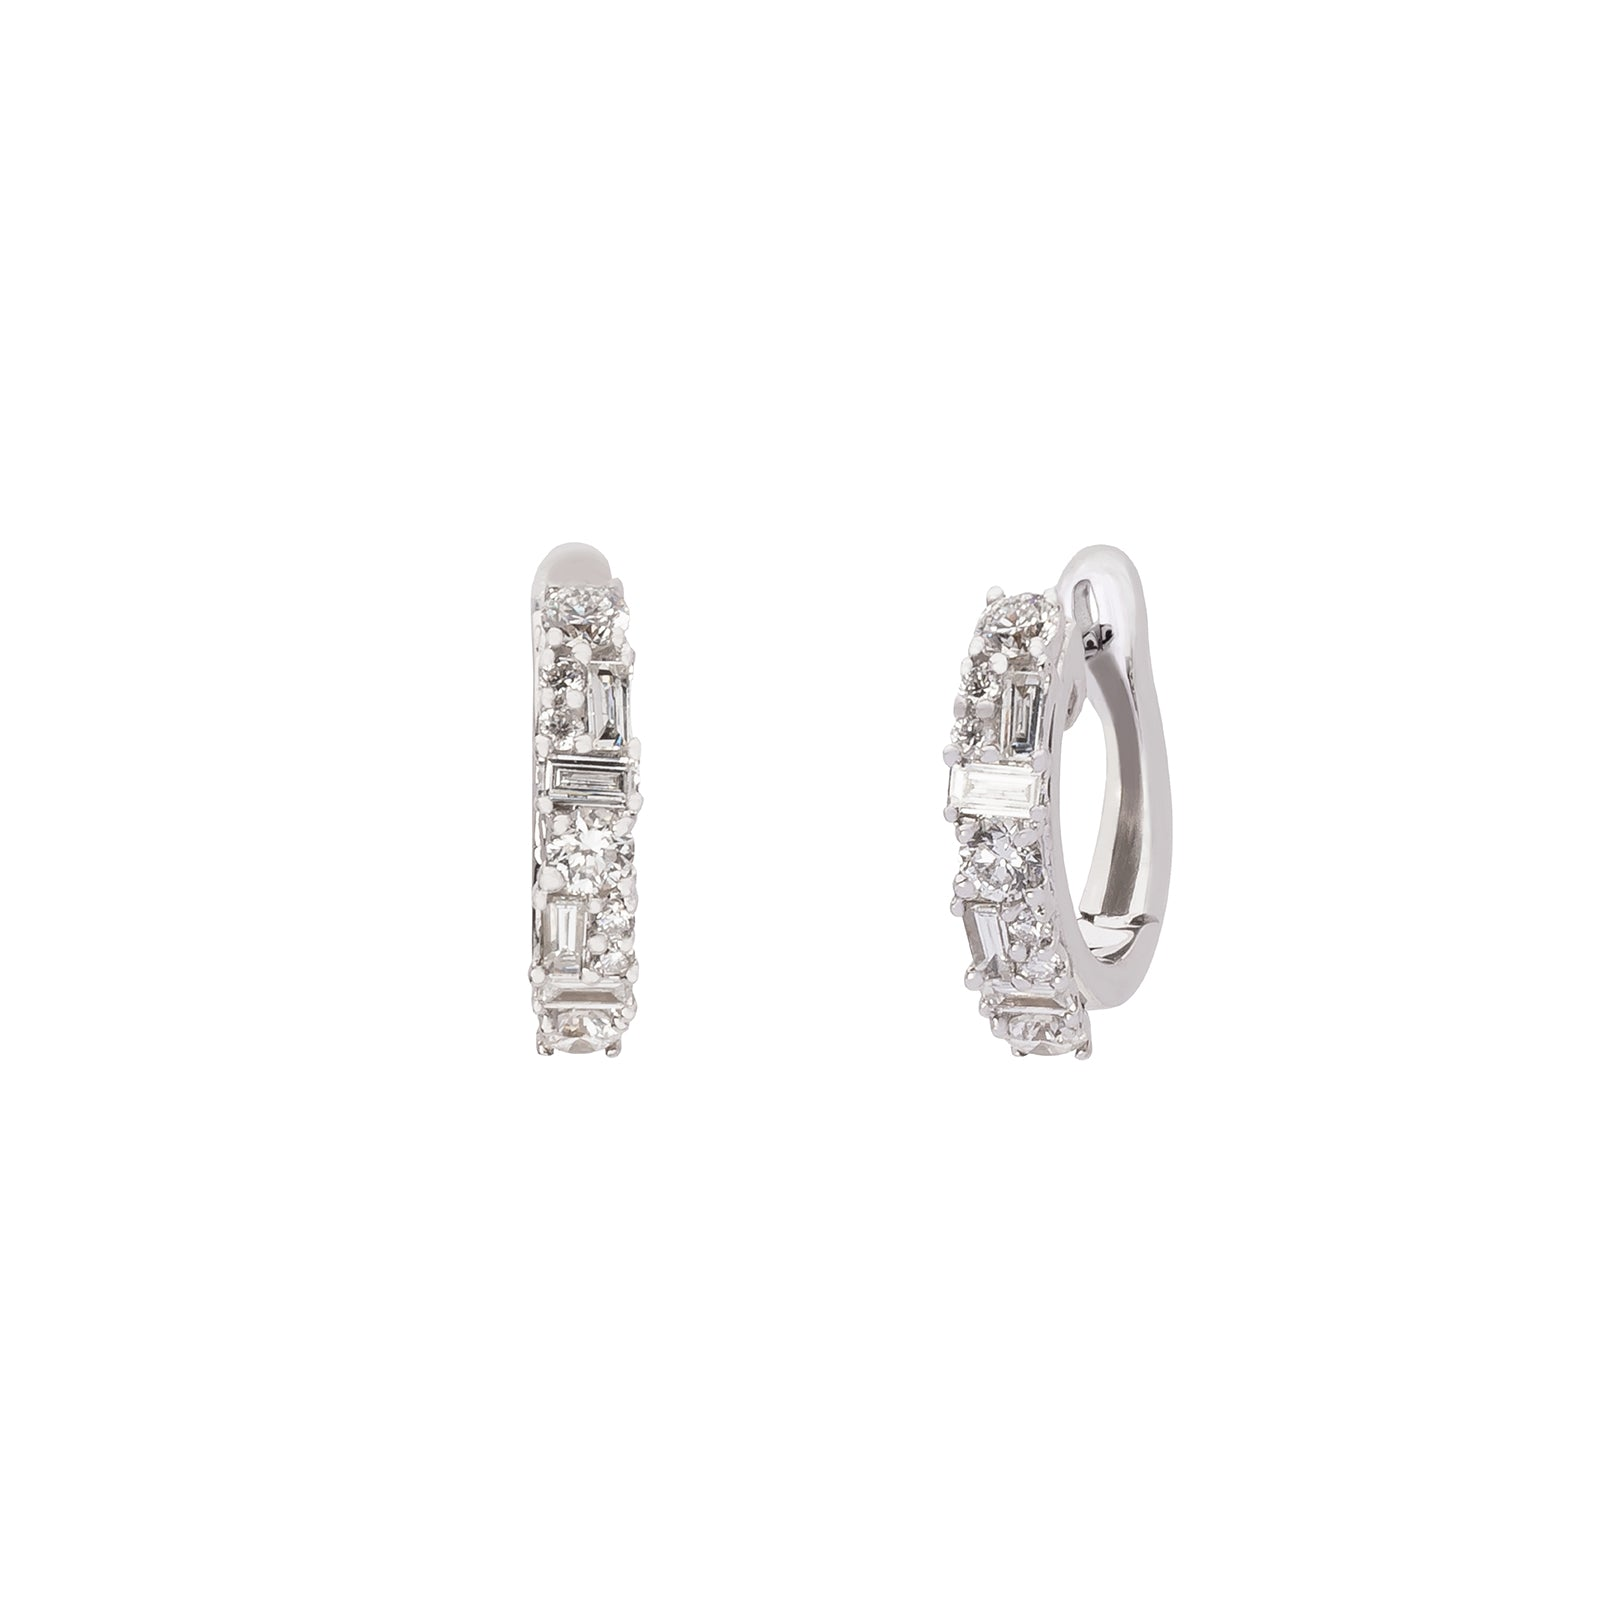 Borgioni Mixed Cut Diamond Huggies - White Gold - Earrings - Broken English Jewelry